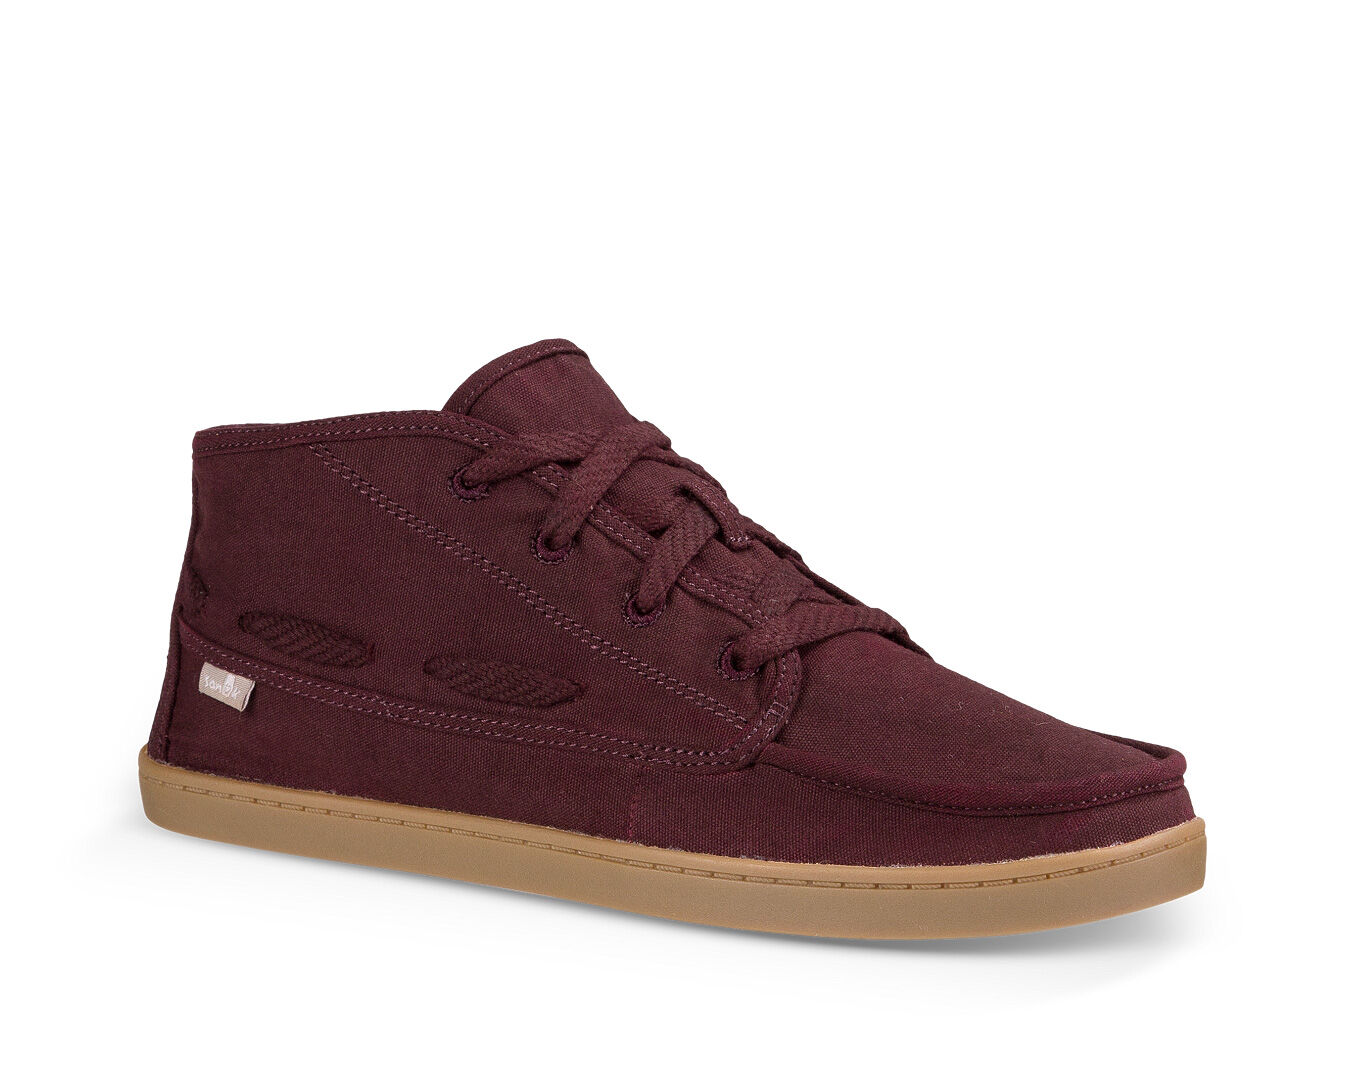 6f72e64e1eee56 womens shoes for sale   OFF47% Discounts